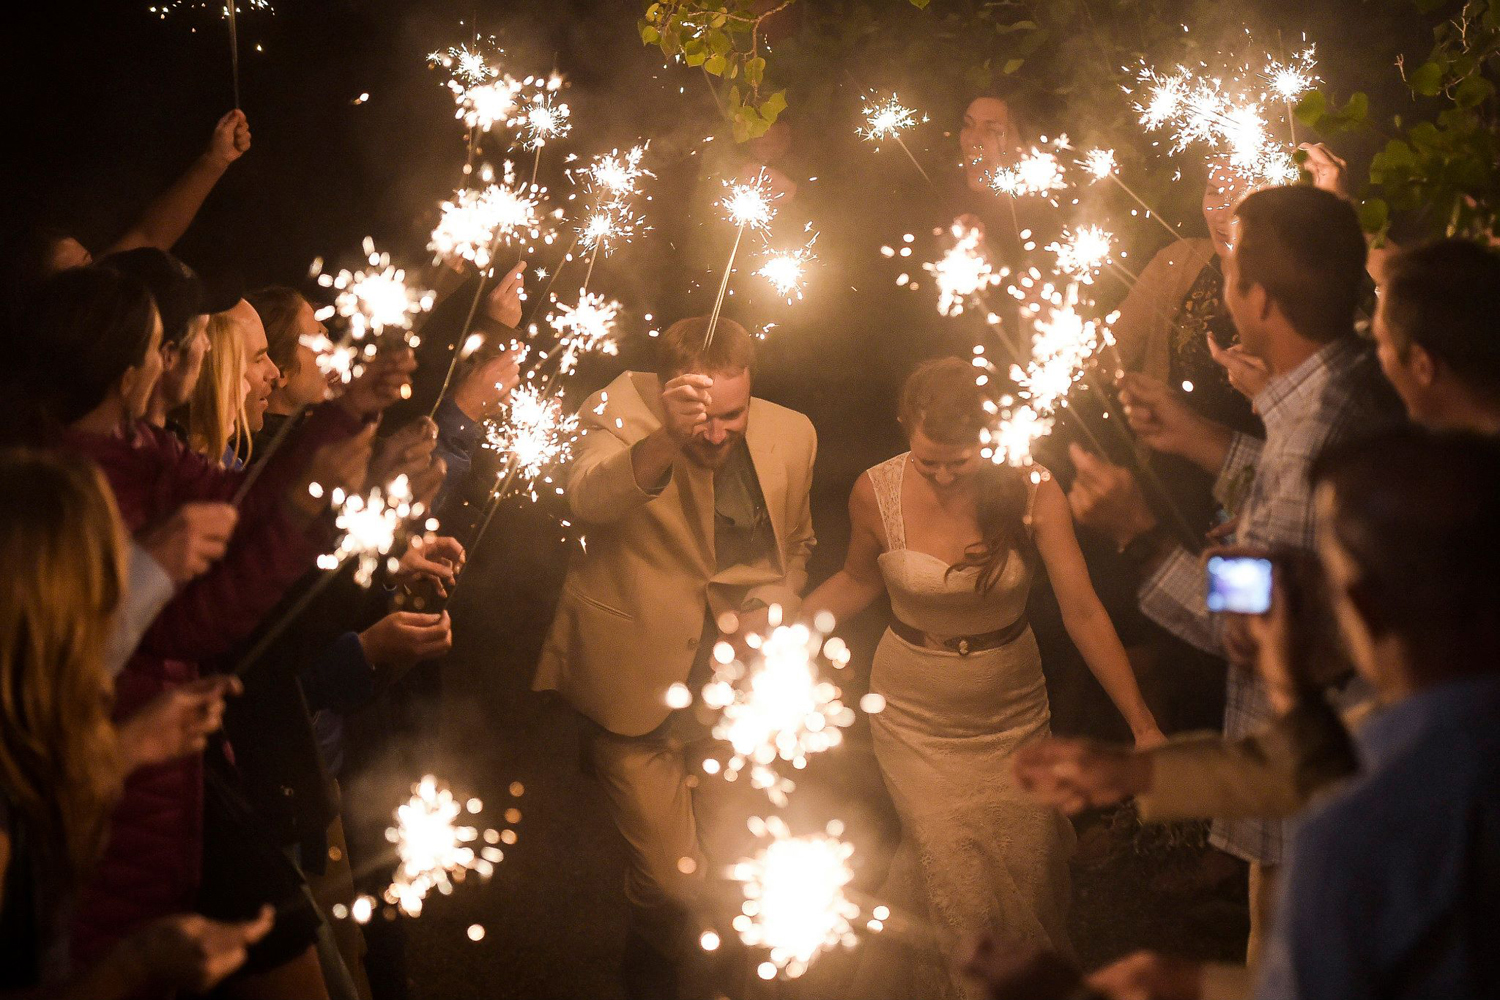 couple exits wedding through glowing sparklers